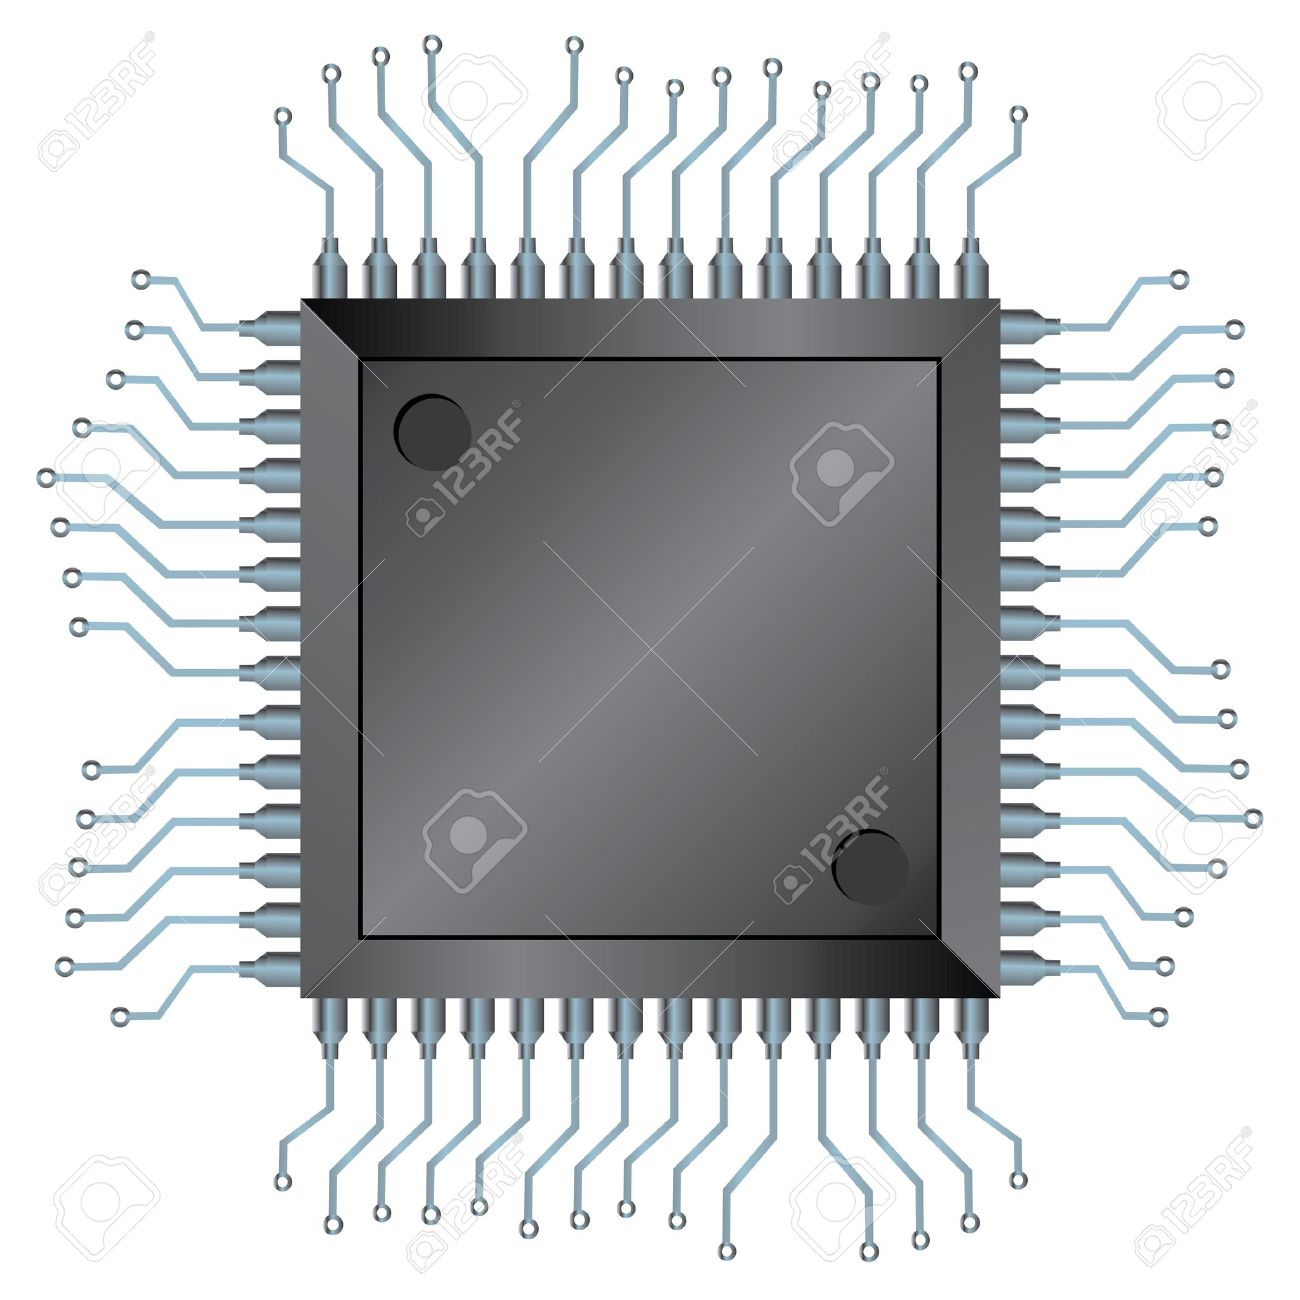 Electronic Semiconductor Integrated Component Royalty Free.